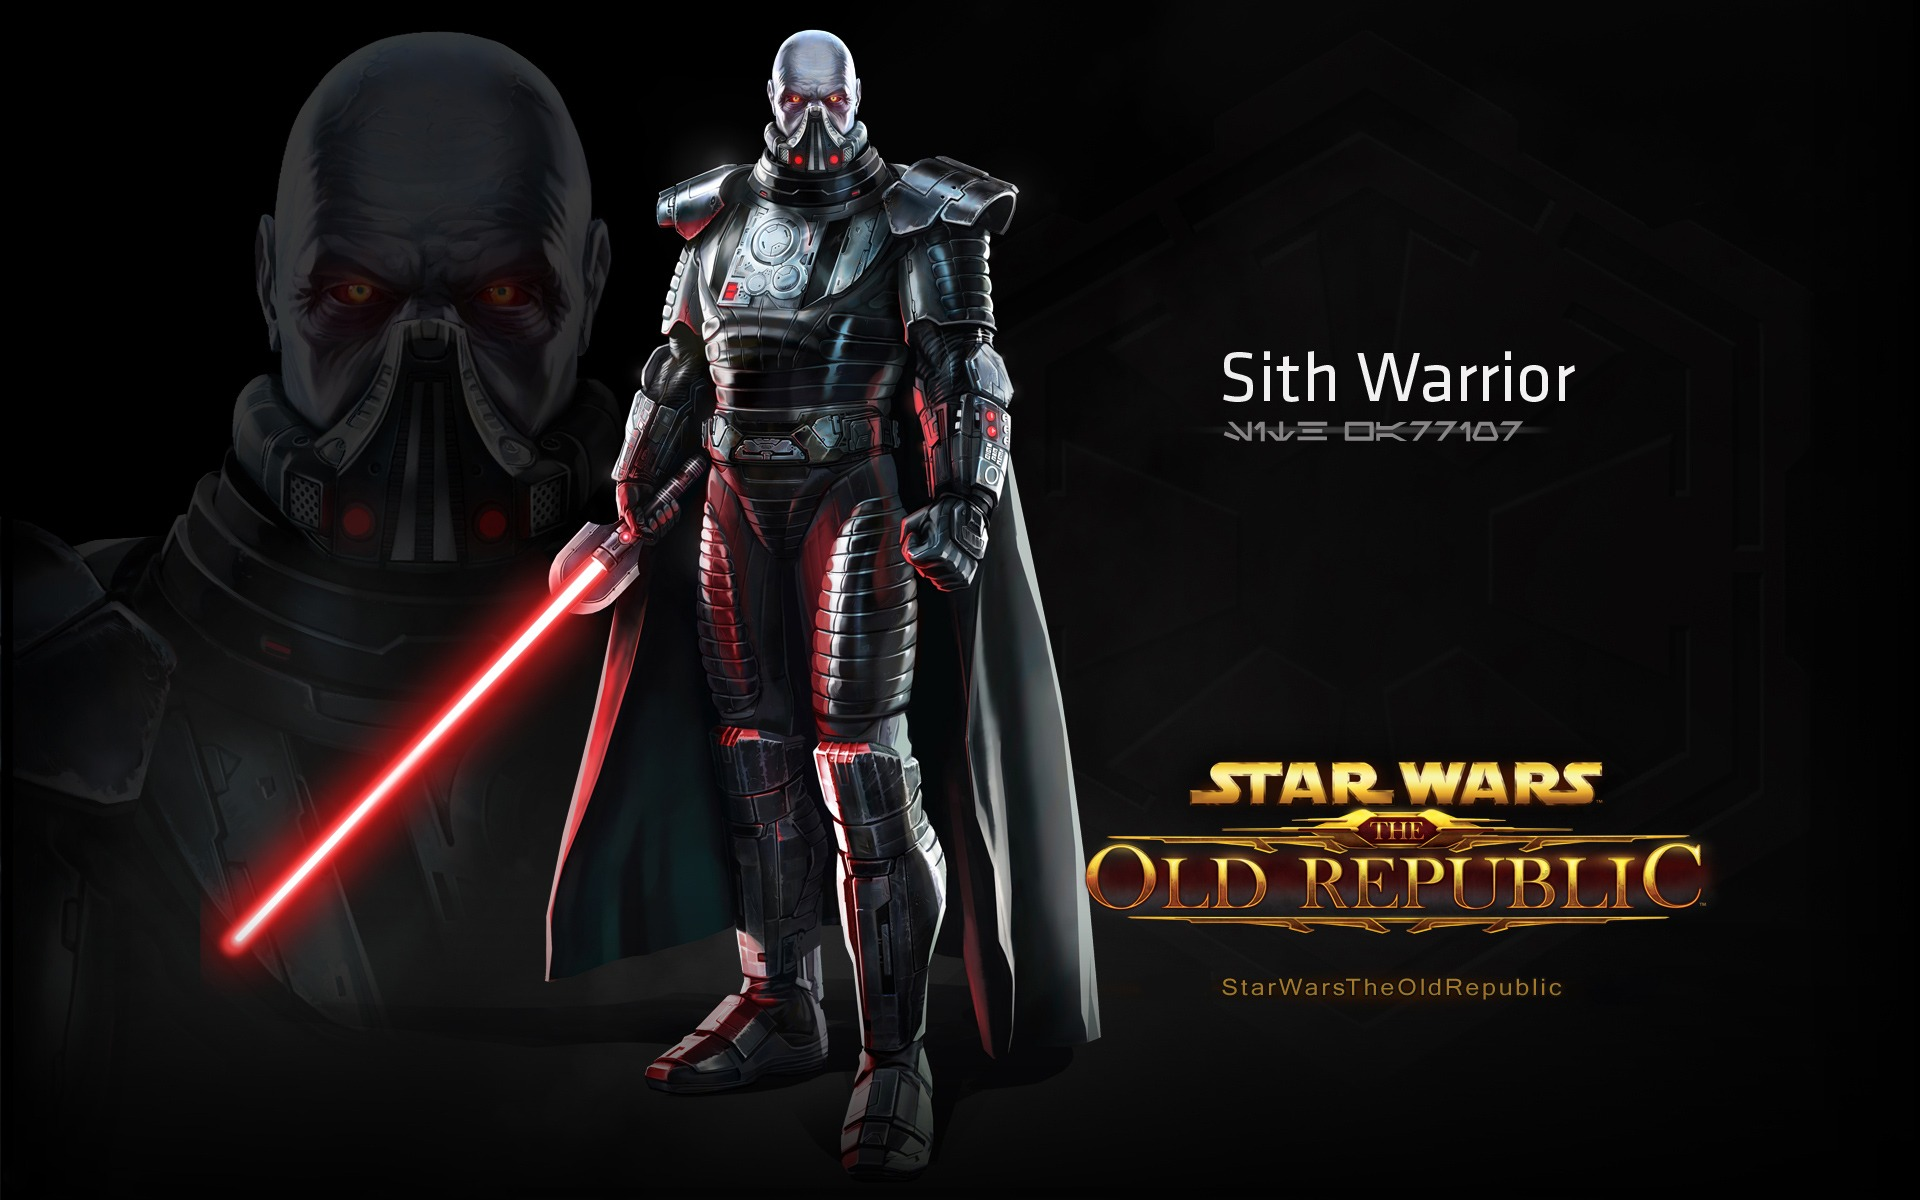 Sith 4k Wallpapers For Your Desktop Or Mobile Screen Free And Easy To Download